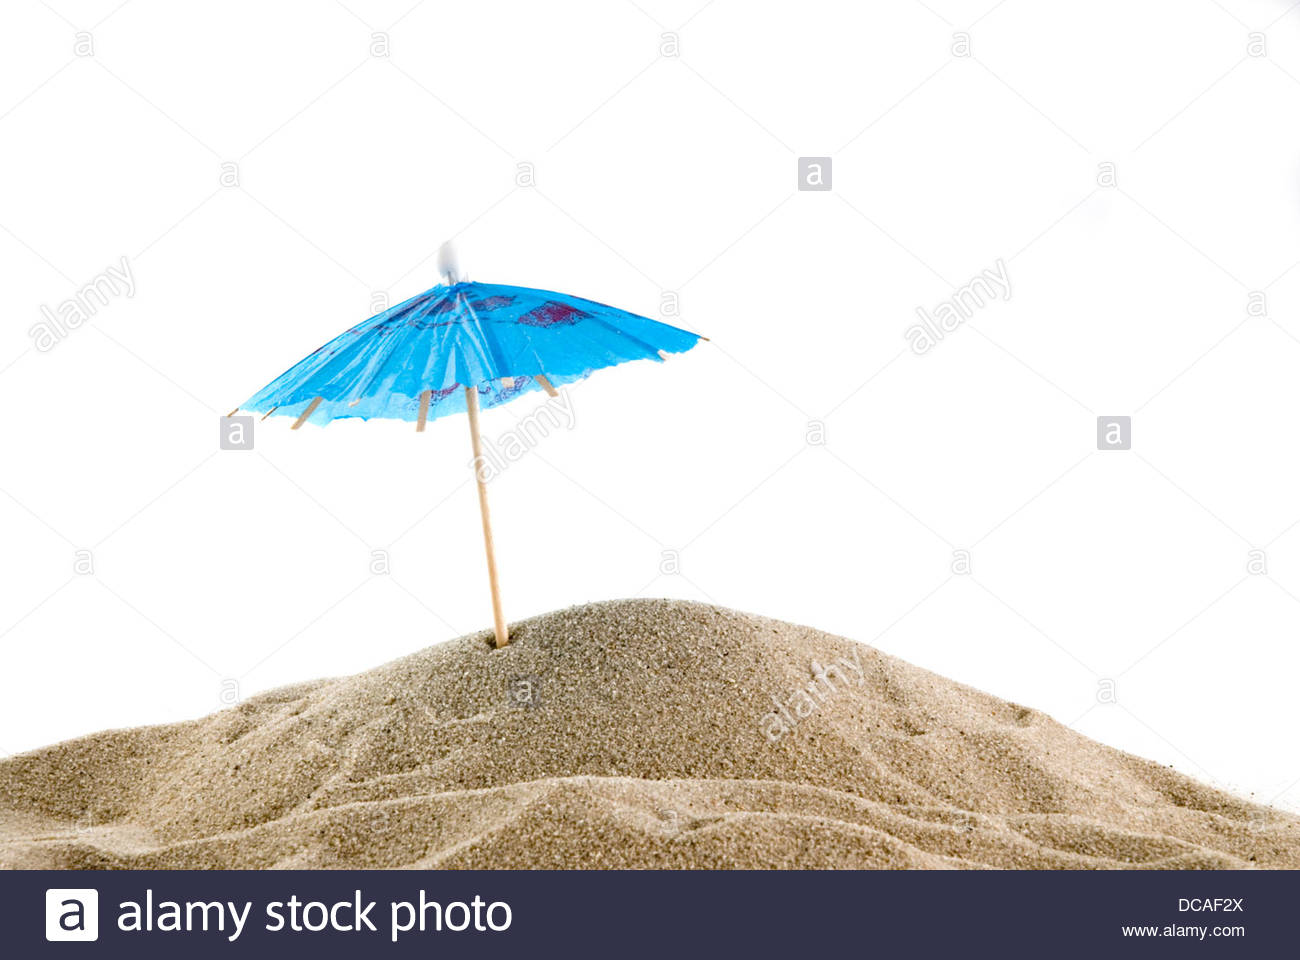 One blue parasol on the beach - Stock Image